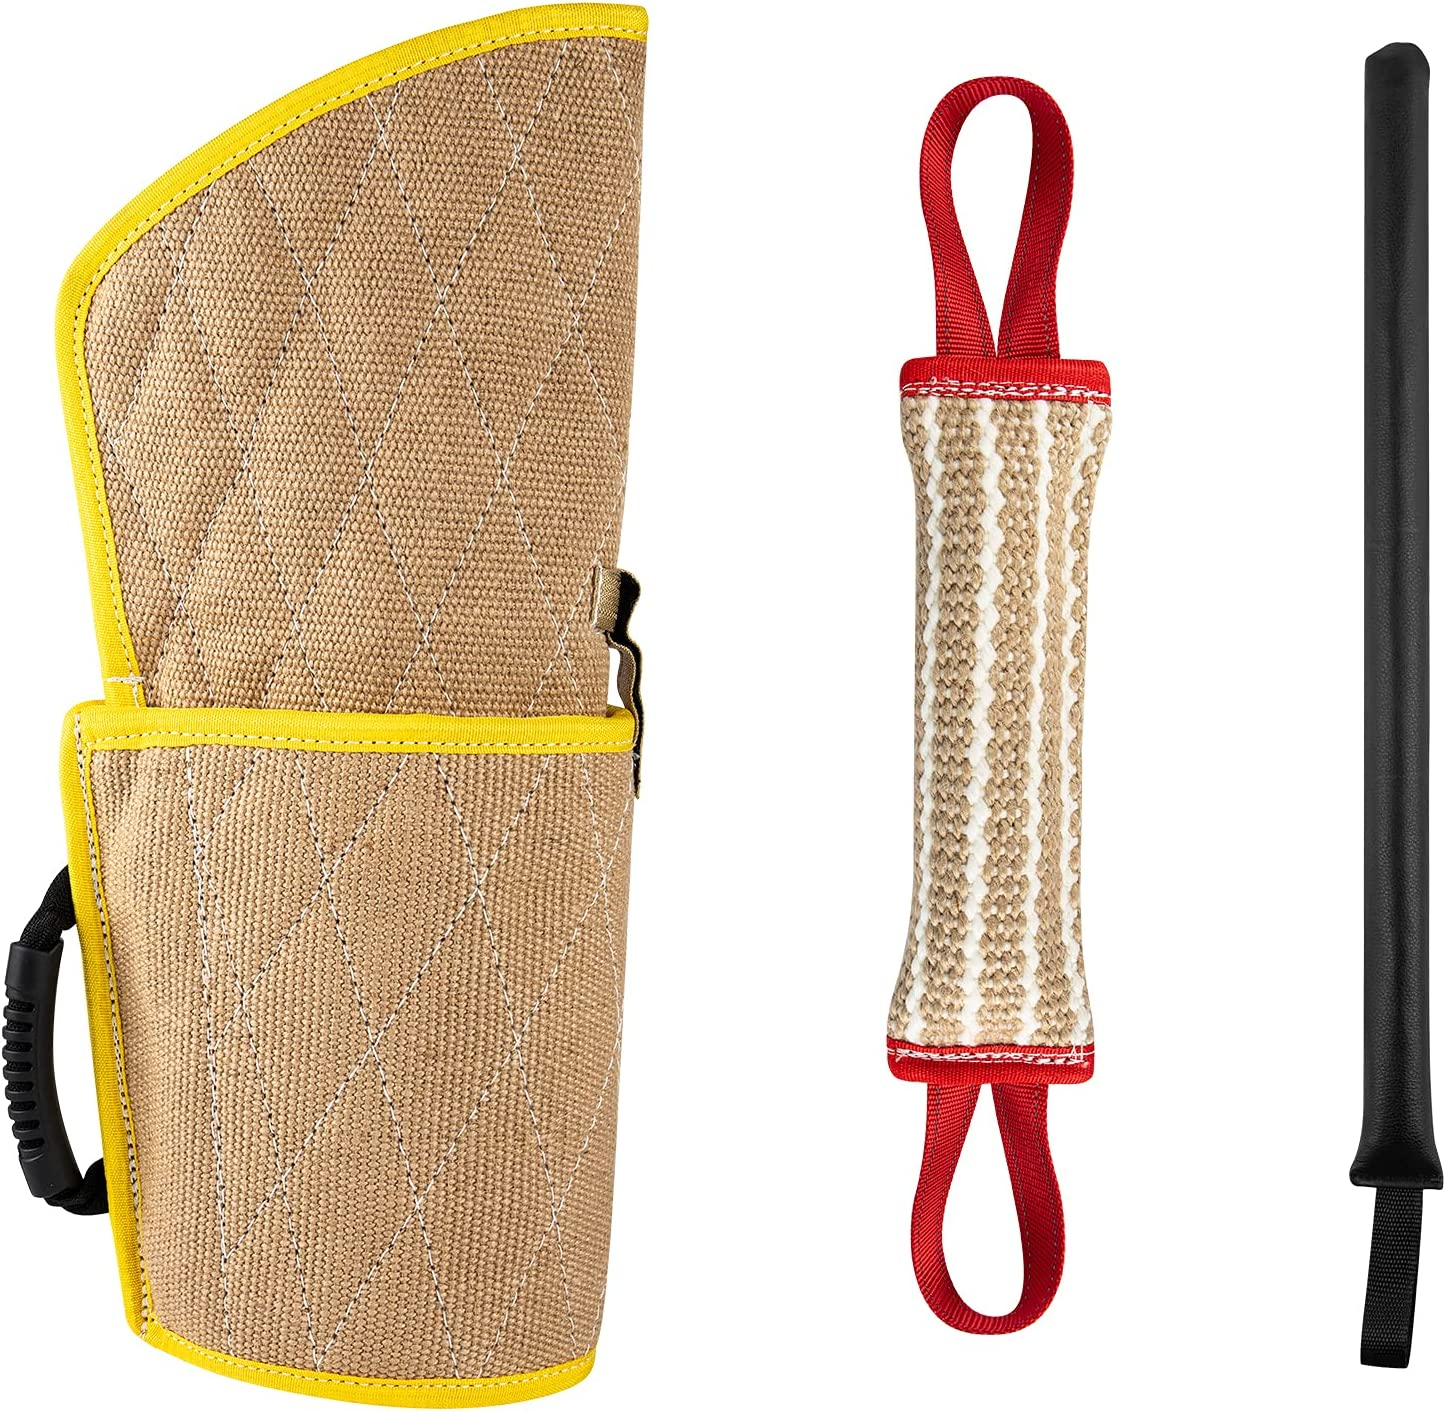 MeiMeiDa Dog Training Bite Sleeve Whip with Spring new work one after another Product Agi Arm